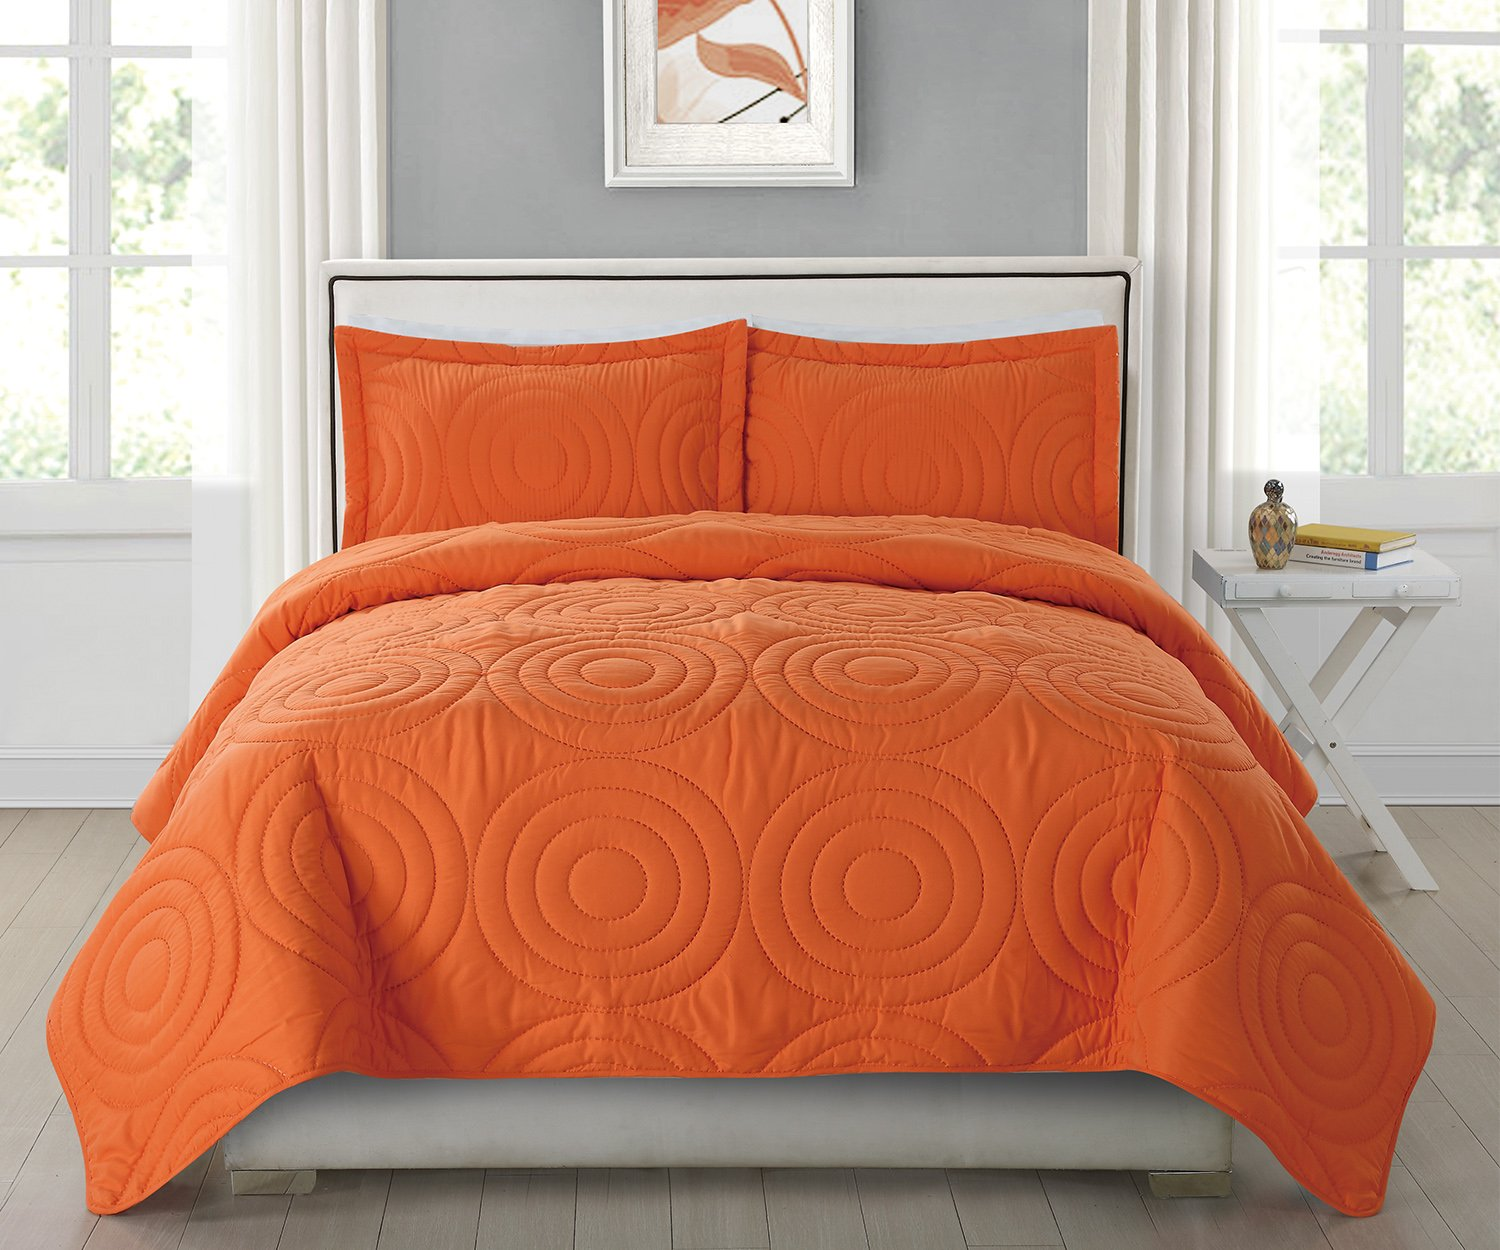 orange and crop uk all en red sets contents kashmir reds affordable quilt double king sizes cover duvet